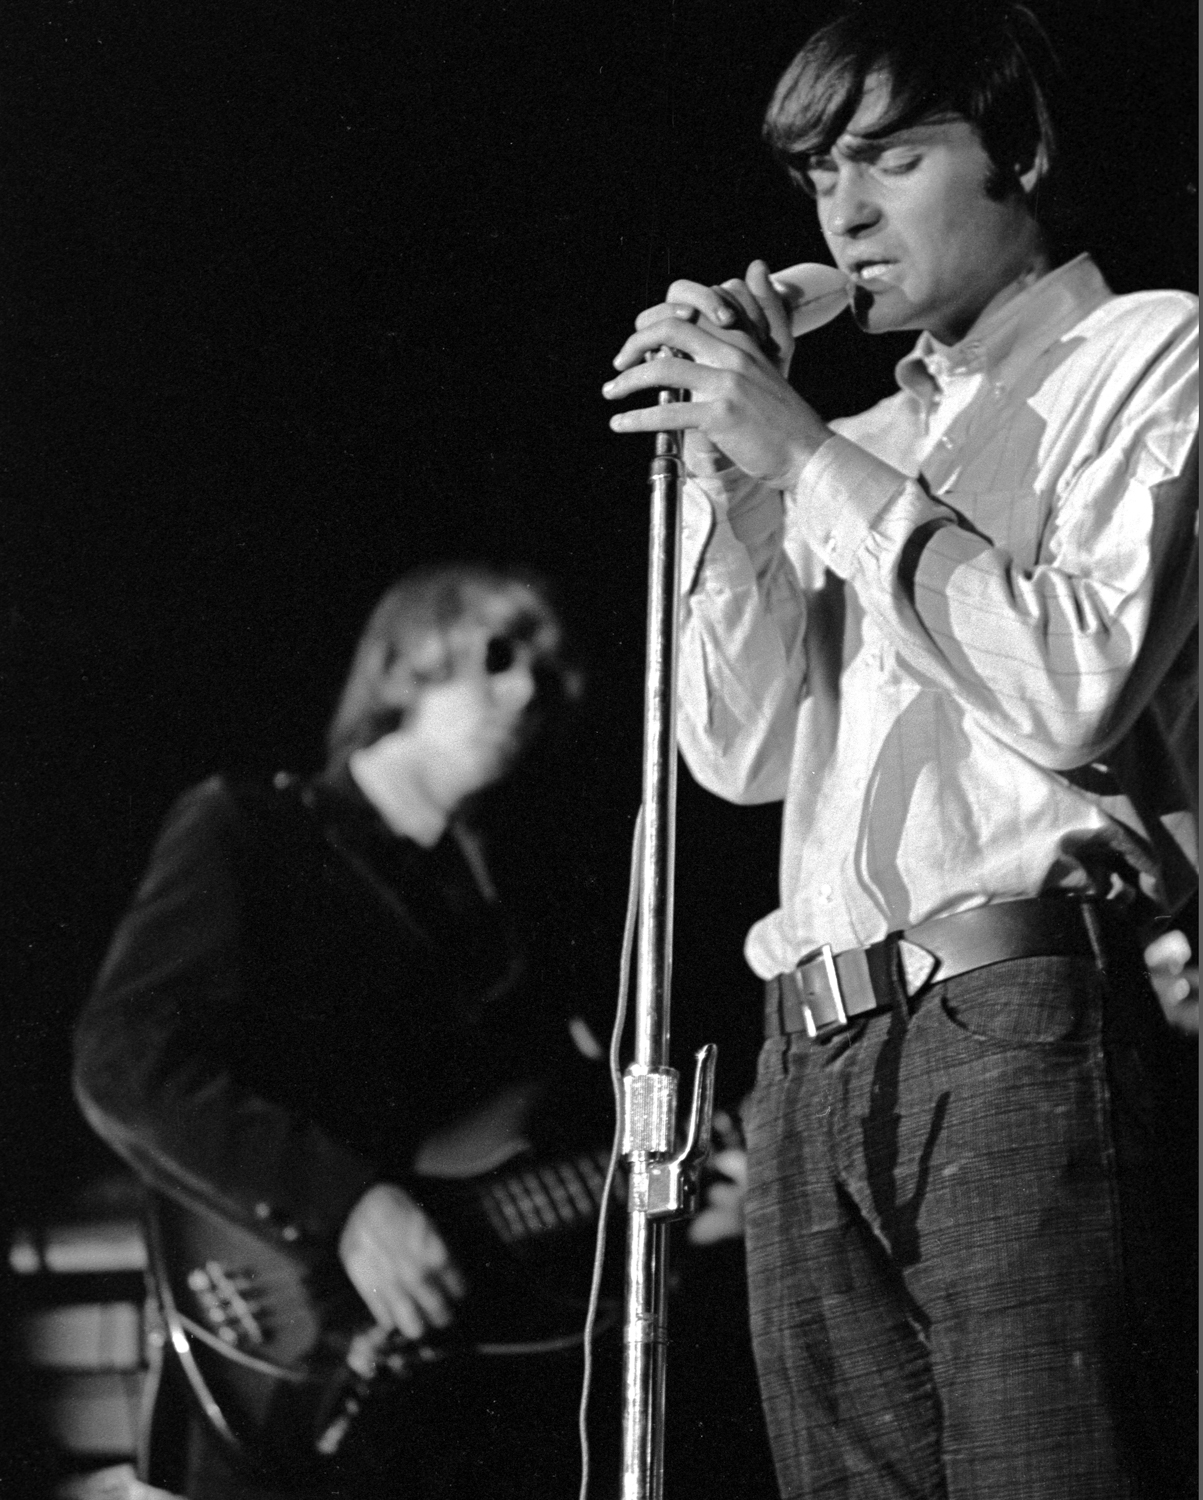 Marty Balin (right) and Jack Casady on bass (left) at Stanford University, 1966